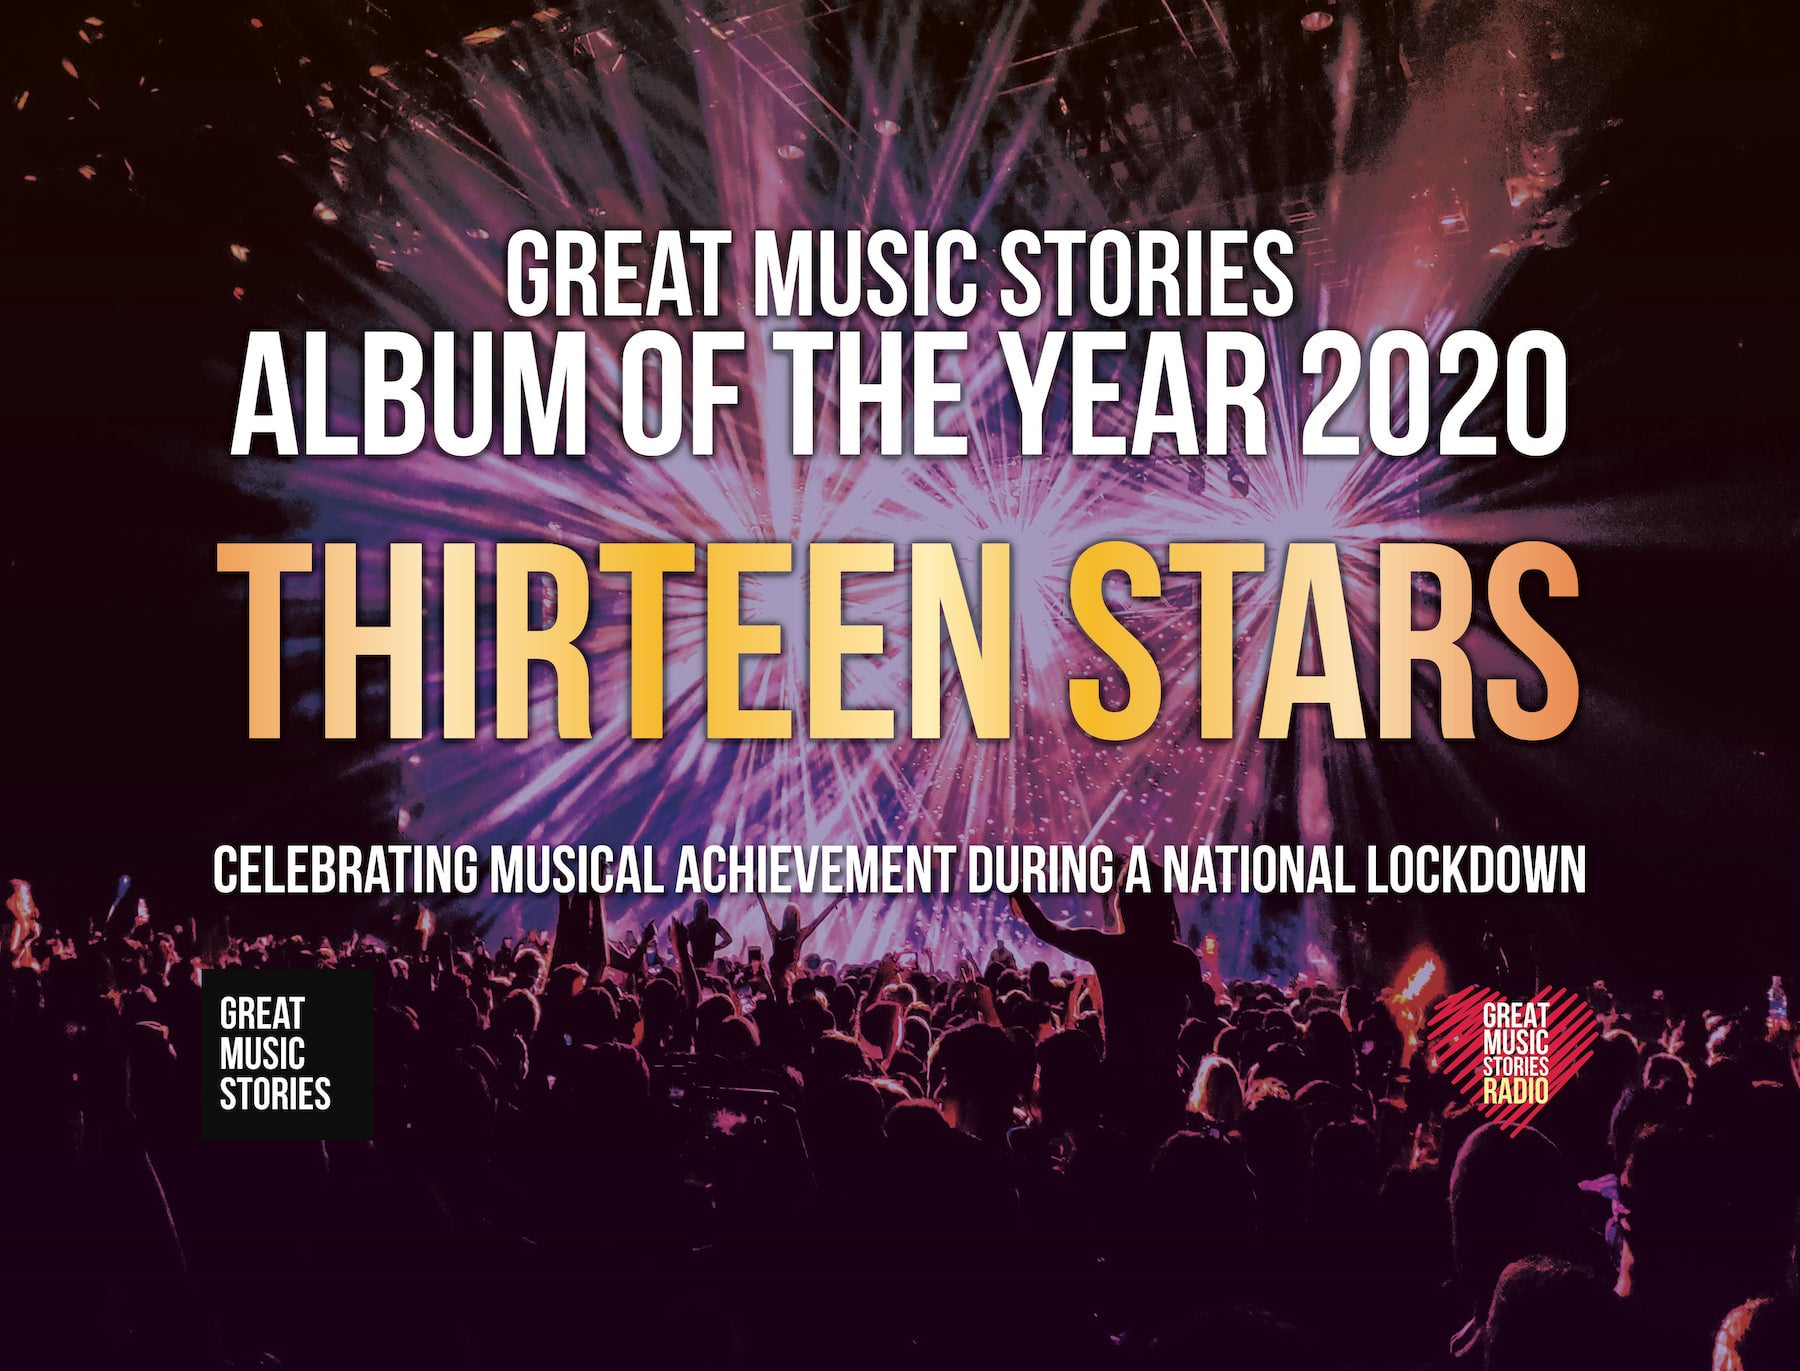 Award Winners 2020 - Thirteen Stars